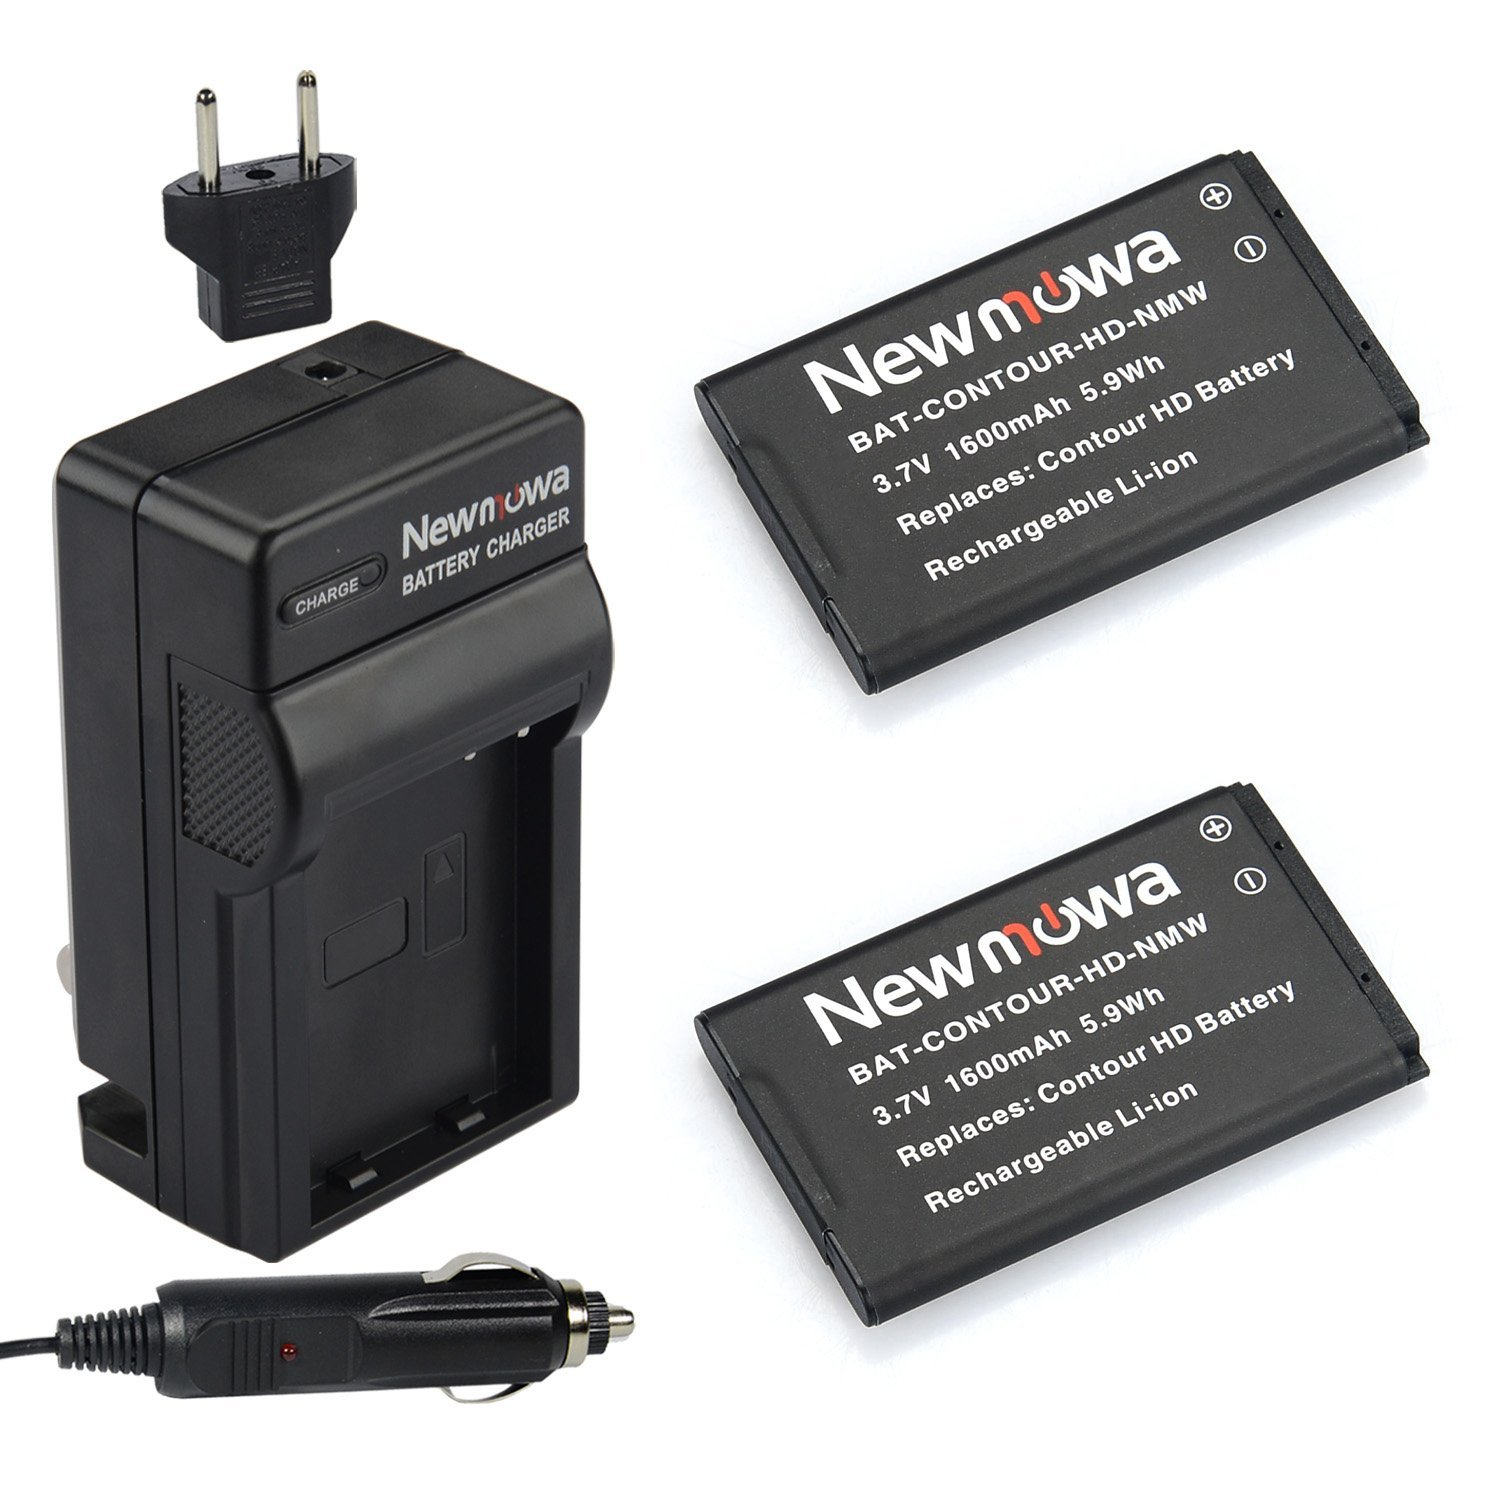 Newmowa CT-3650 Battery (2-Pack) and Charger kit for Contour CT3650, GPS, HD, HD1080P, HD1200, HD1300, HD1500, HD1600, HD2035, HD2350, HD2450, HD2900, HD3200, HD3300, HD720P